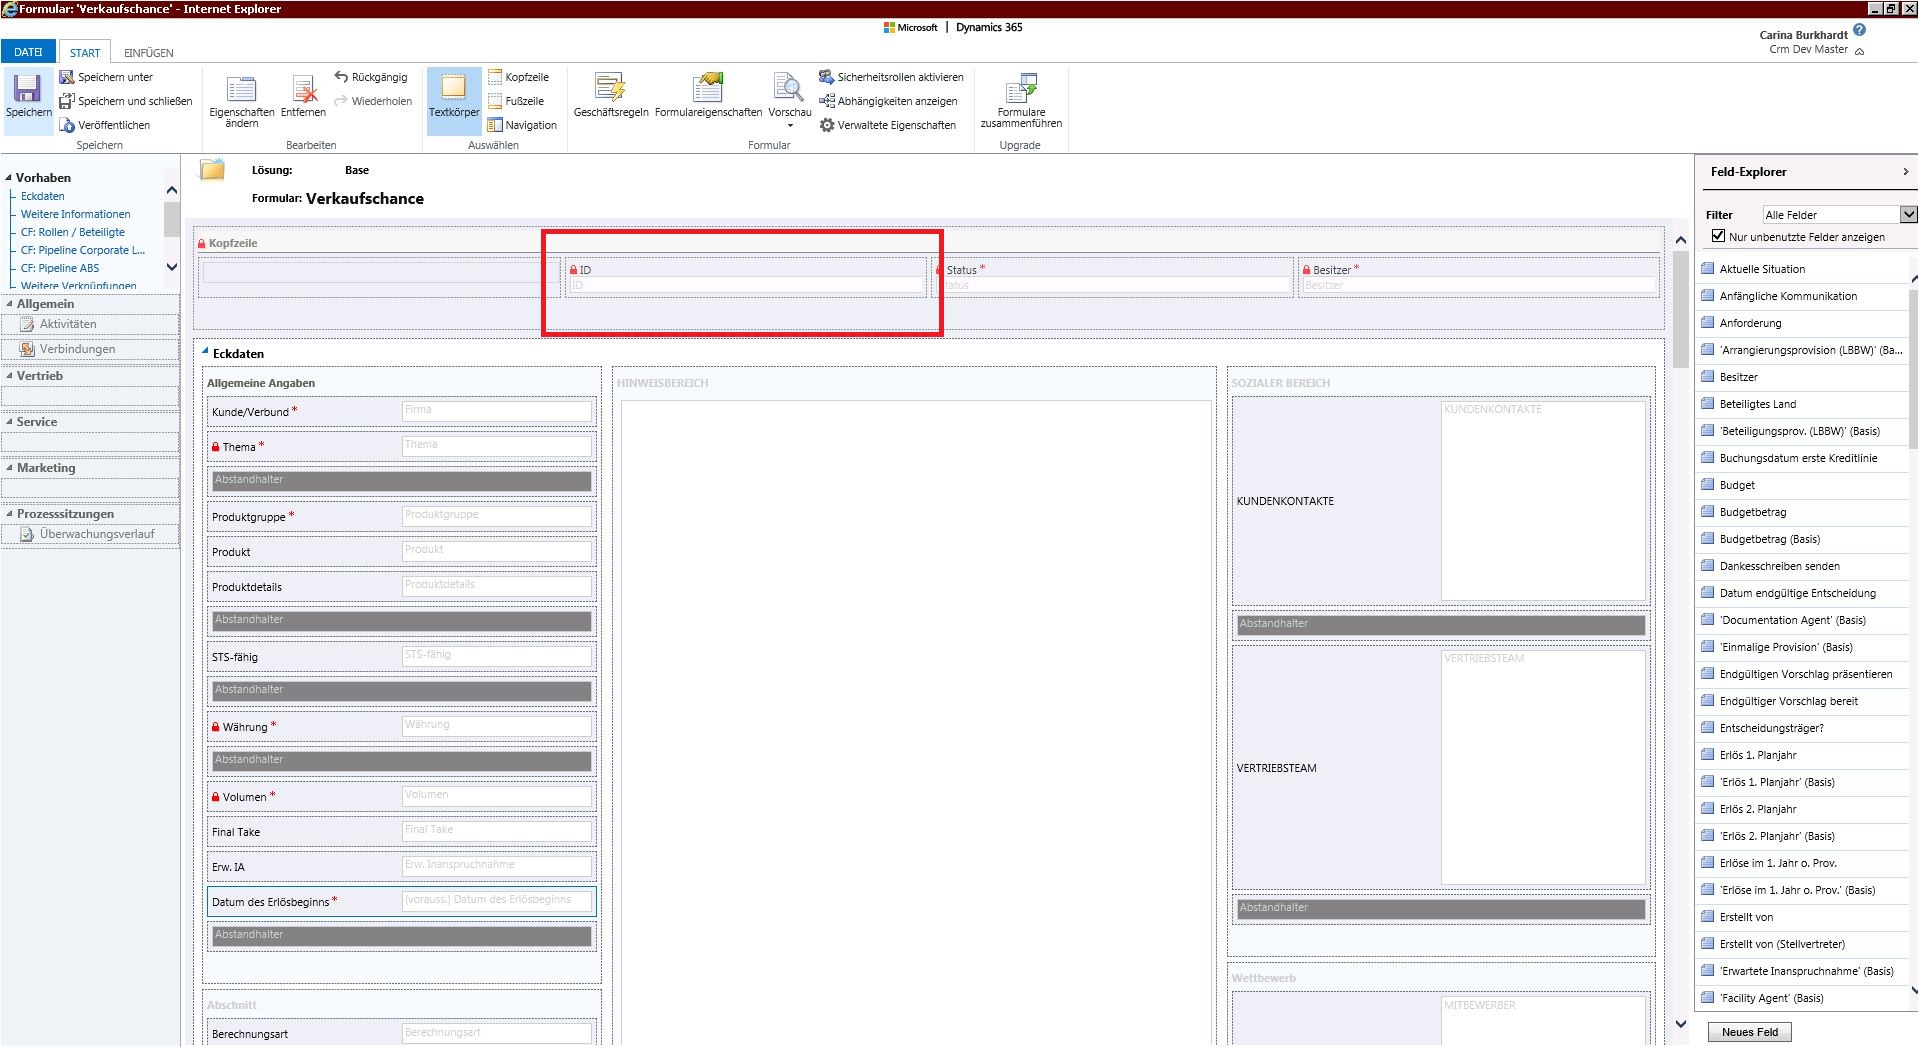 Microsoft Dynamics CRM: How to set a unique ID for an entity